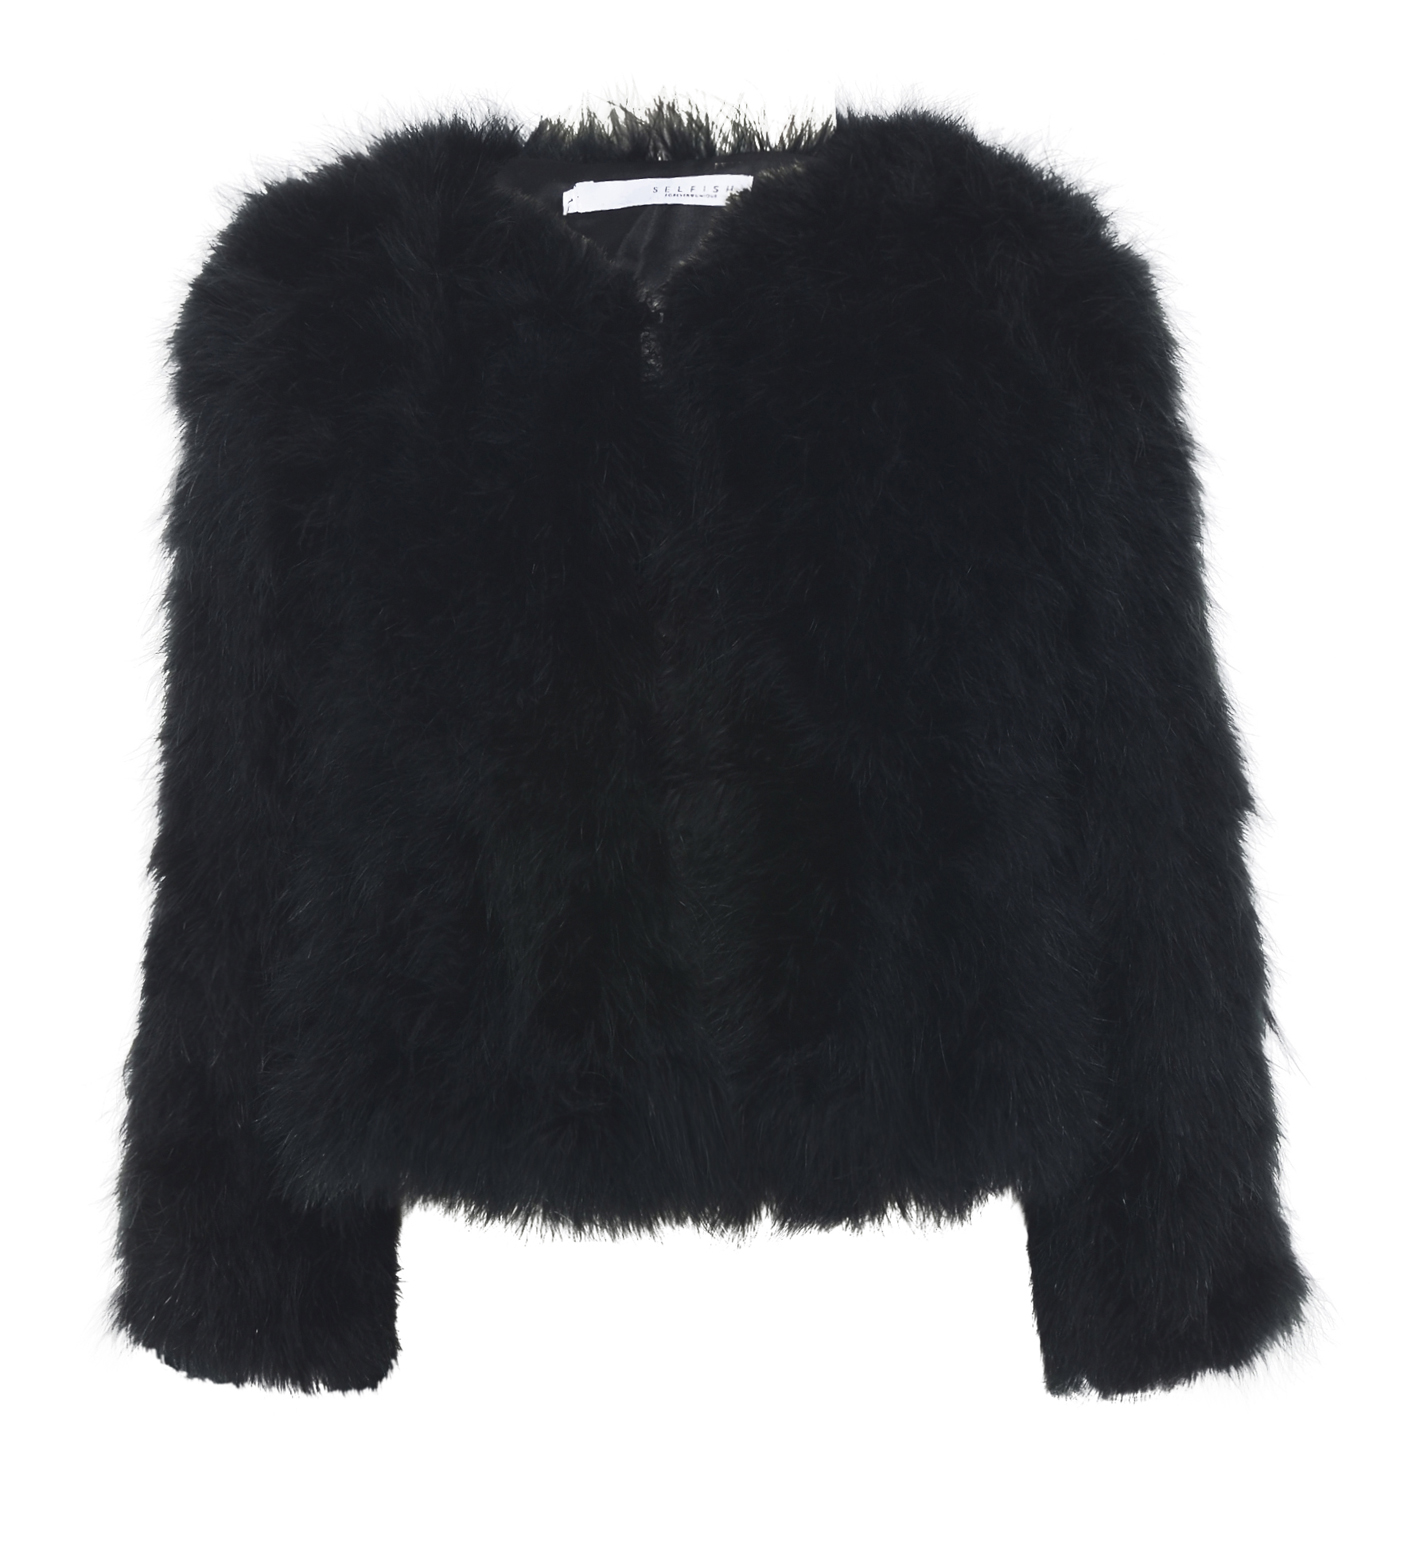 Women's Fur & Faux Fur Jackets & Coats Choies Women's Reversible Faux Fur Winter Hooded Cardigan Coat Black/Beige/Burgundy. from $ 38 99 Prime. out of 5 stars Anself. Women's Shaggy Faux Fur Coat Solid Color Long Sleeve Short Jacket. from $ .